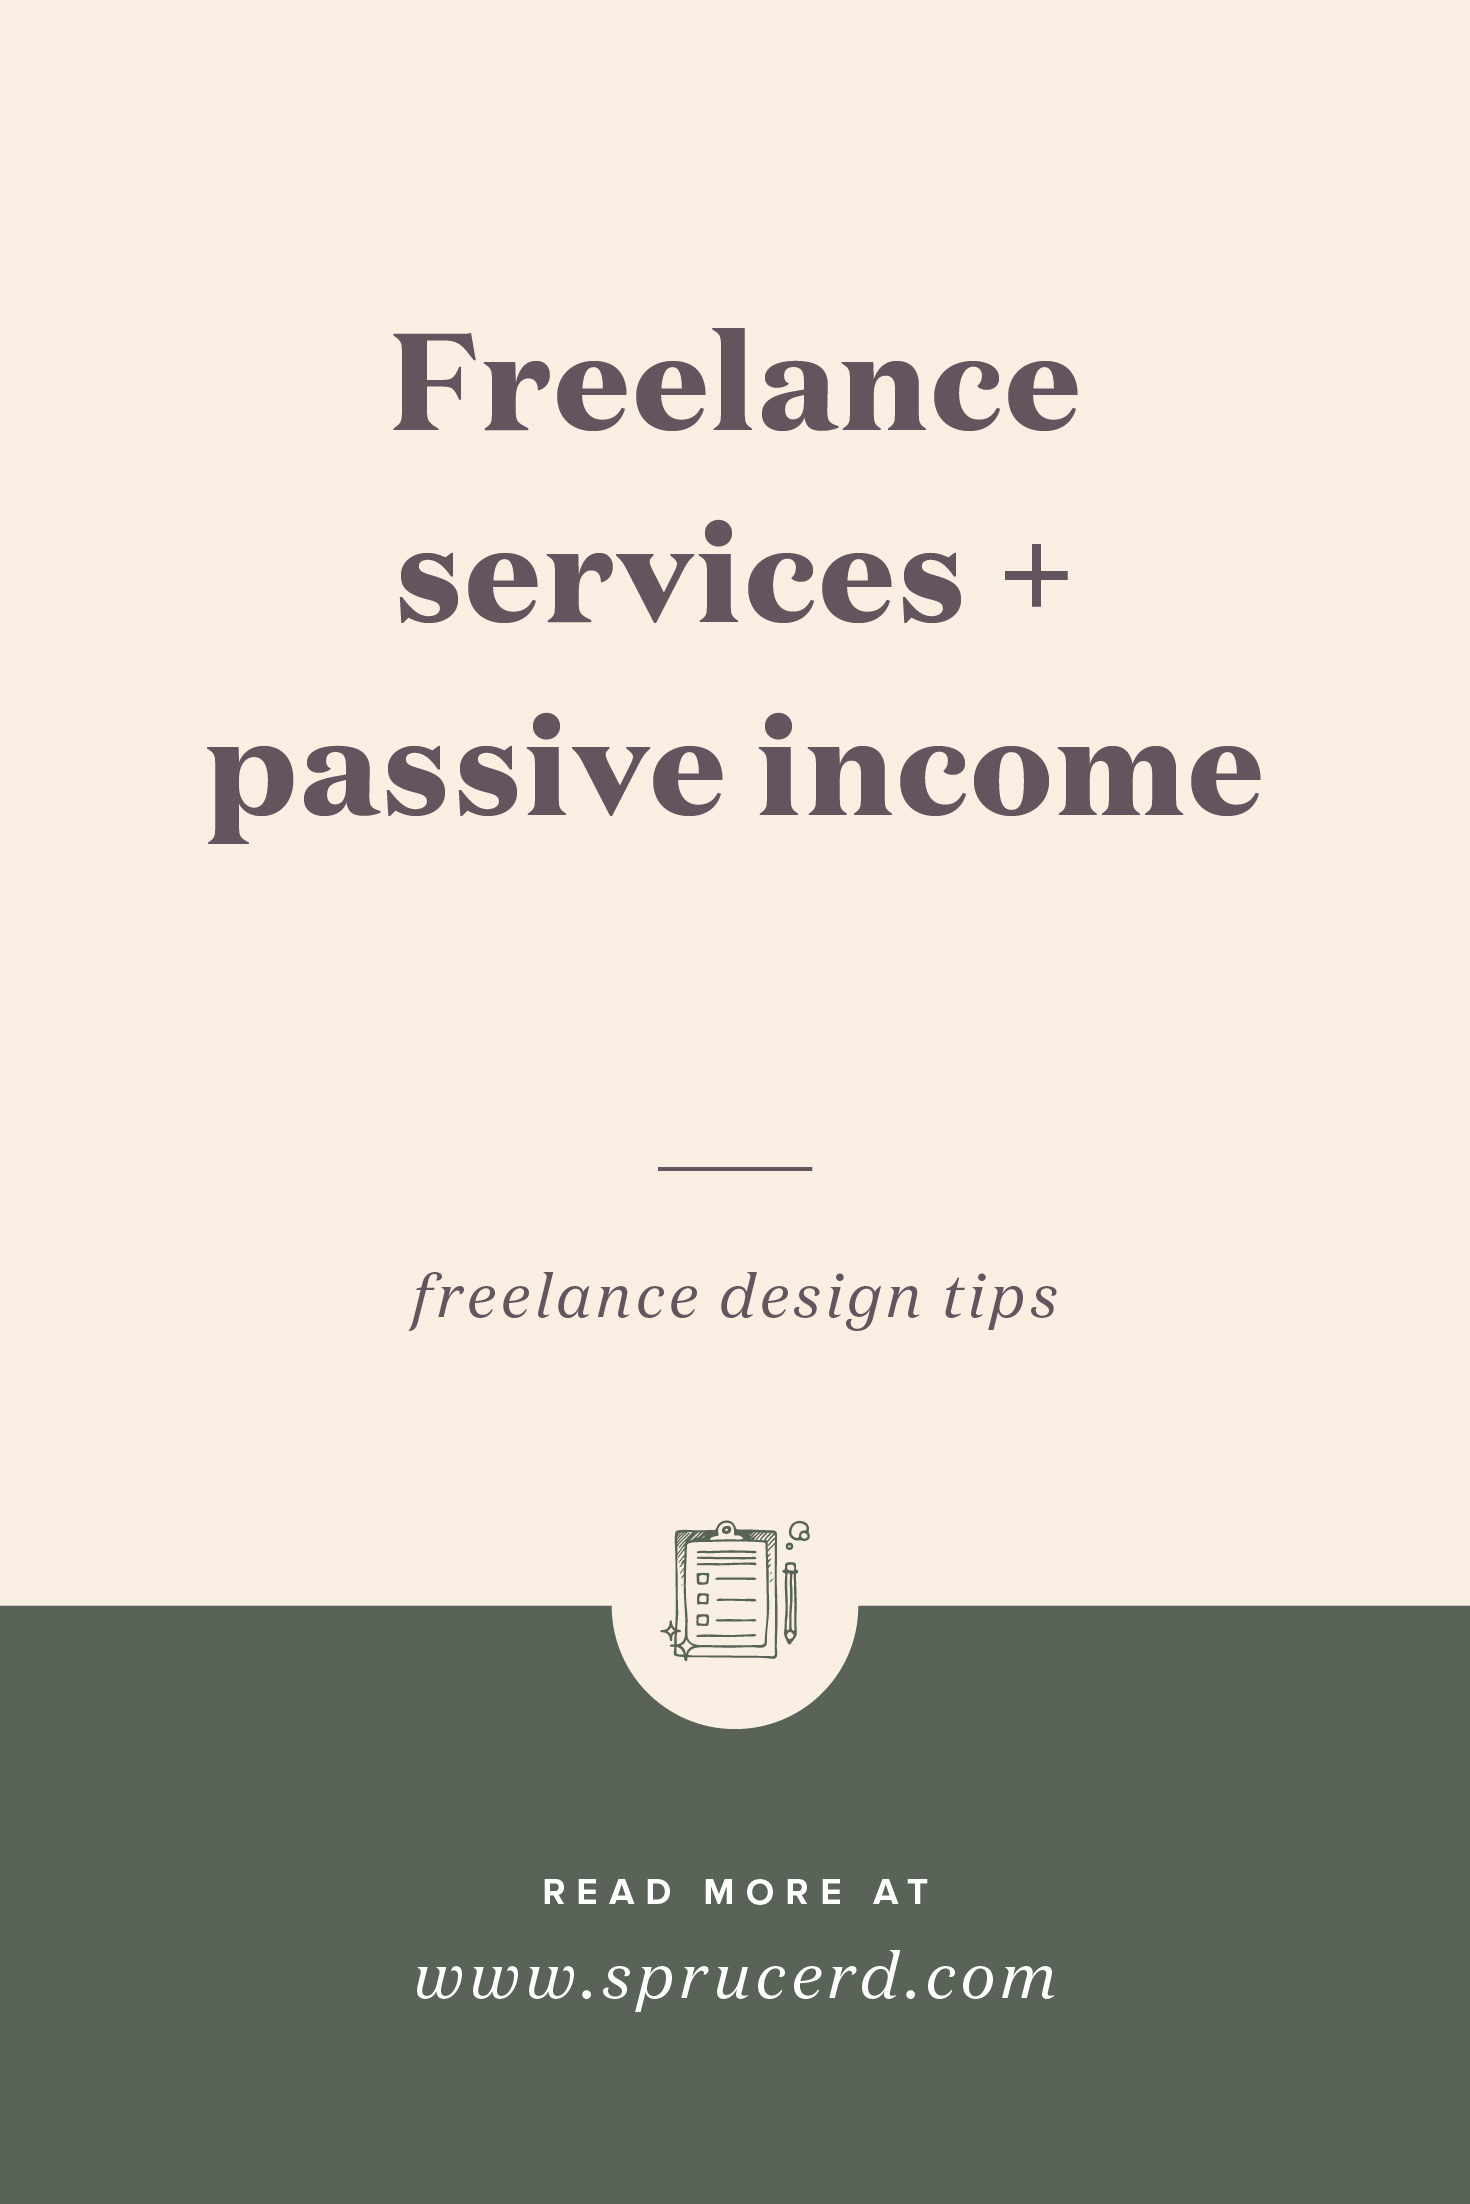 How to increase freelance design income through passive income products | Spruce Rd.